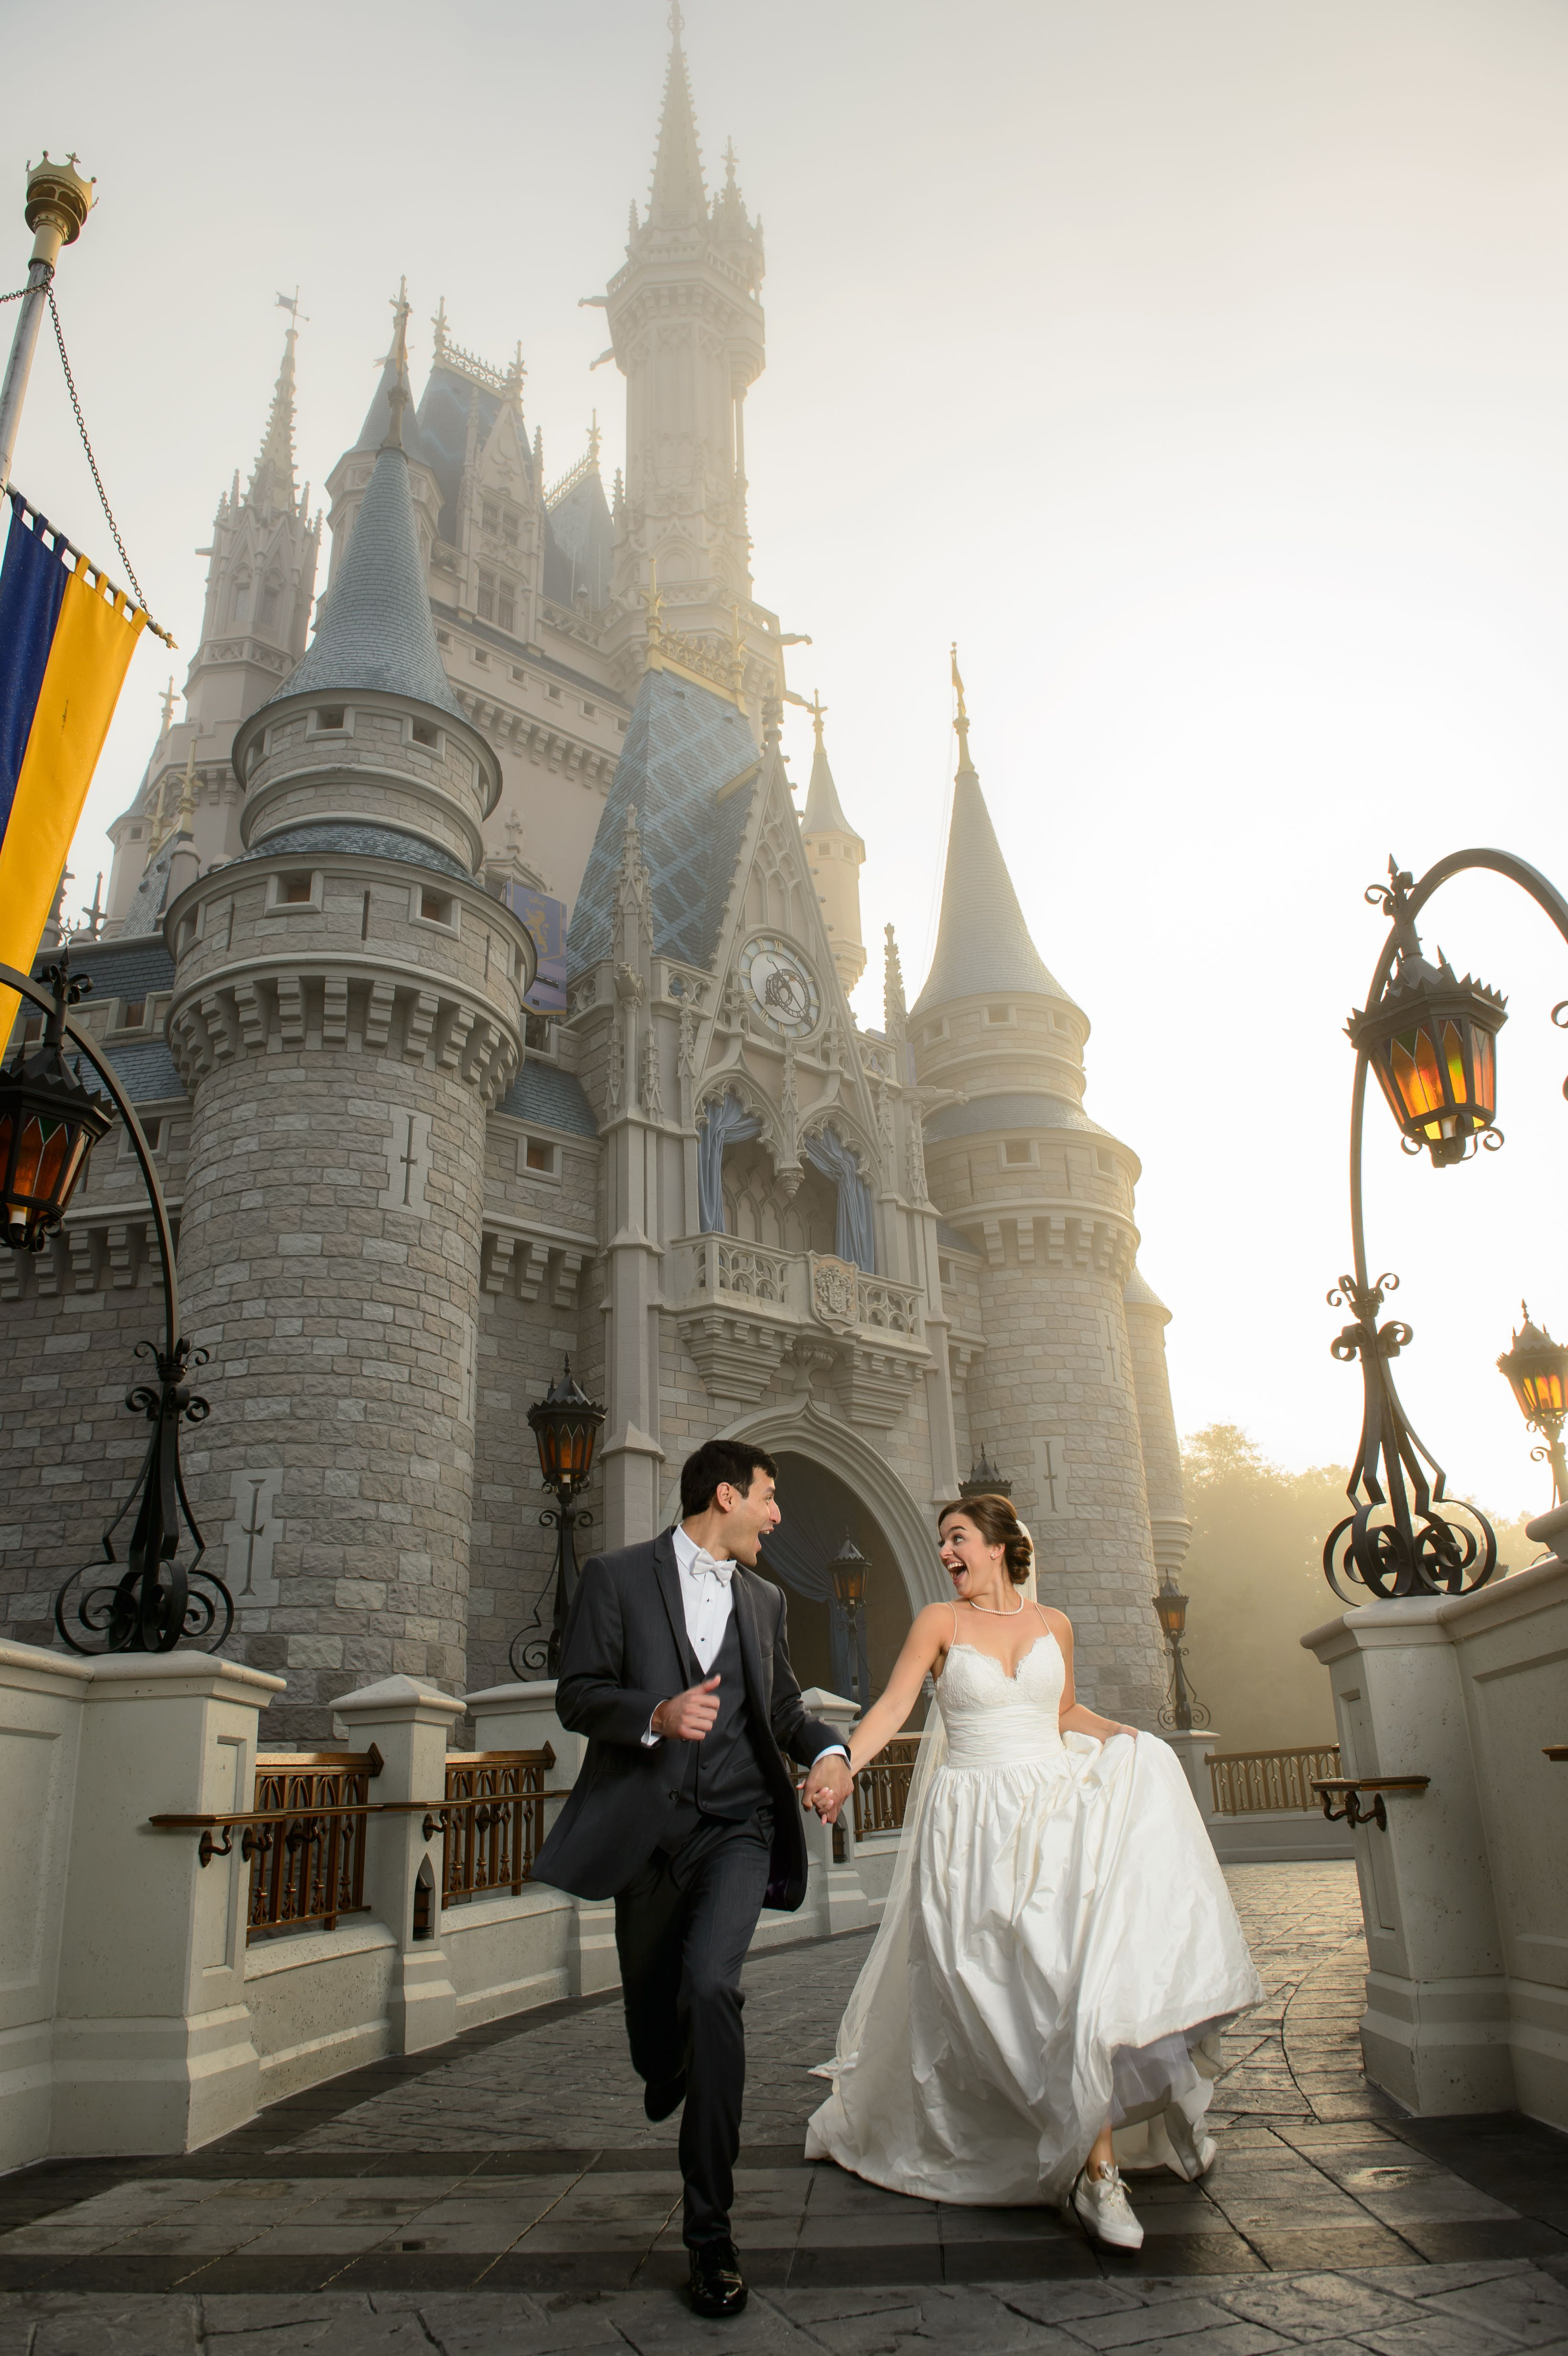 Disney Wedding At Walt Disney World Fairytale Wedding Theme Disney Fairy Tale Weddings Fairytale Wedding Inspiration